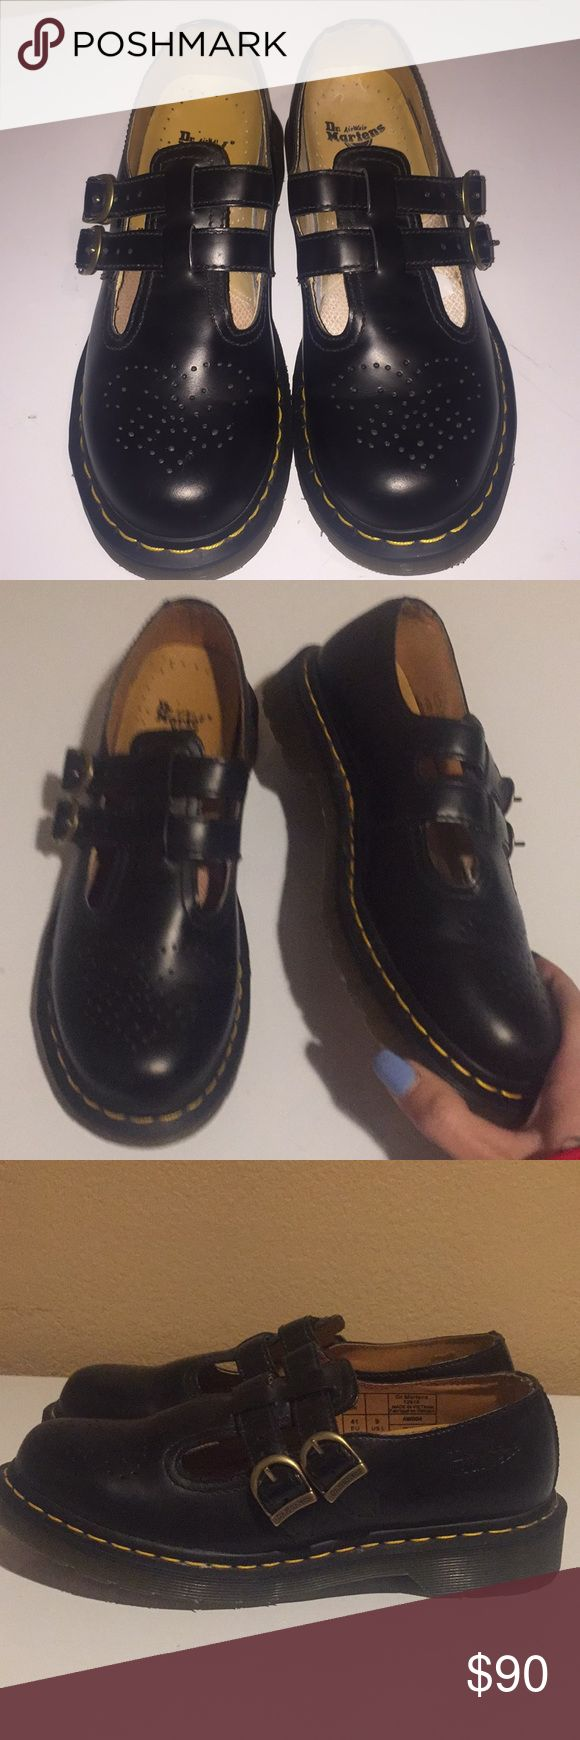 Authentic dr martens Mary Janes Authentic. Us size 9. Wore once for An hour. Minor wear on area your foot slides into but virtually these are brand new Dr. Martens Shoes Flats & Loafers